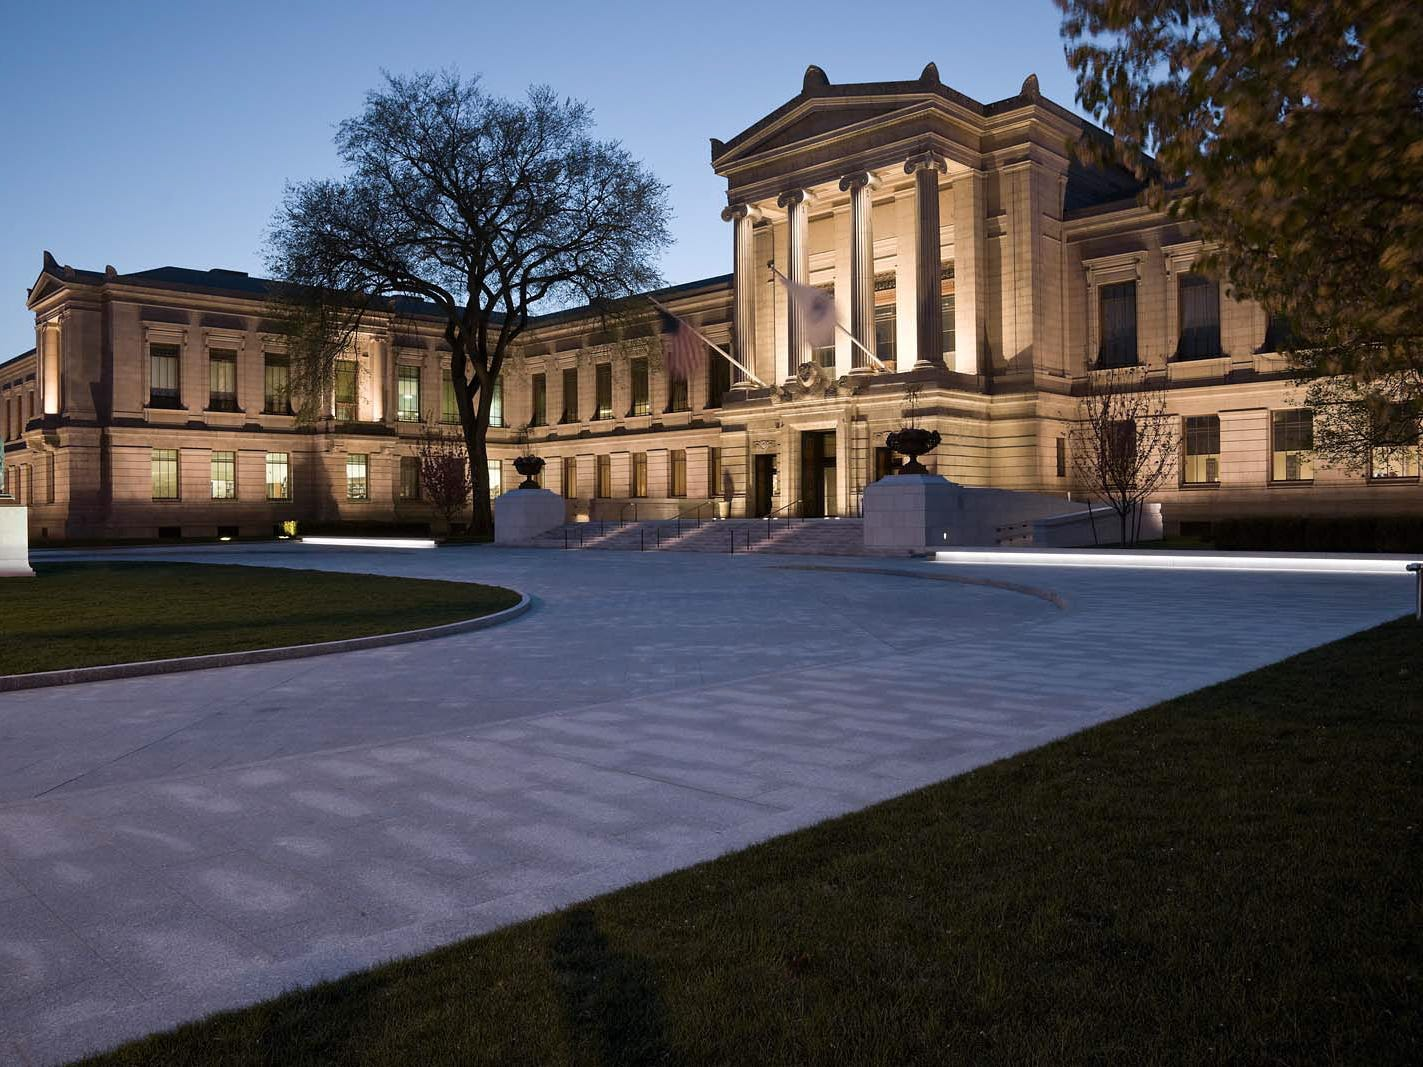 Boston is an affordable destination for January. This is the Museum of Fine Arts at dusk.